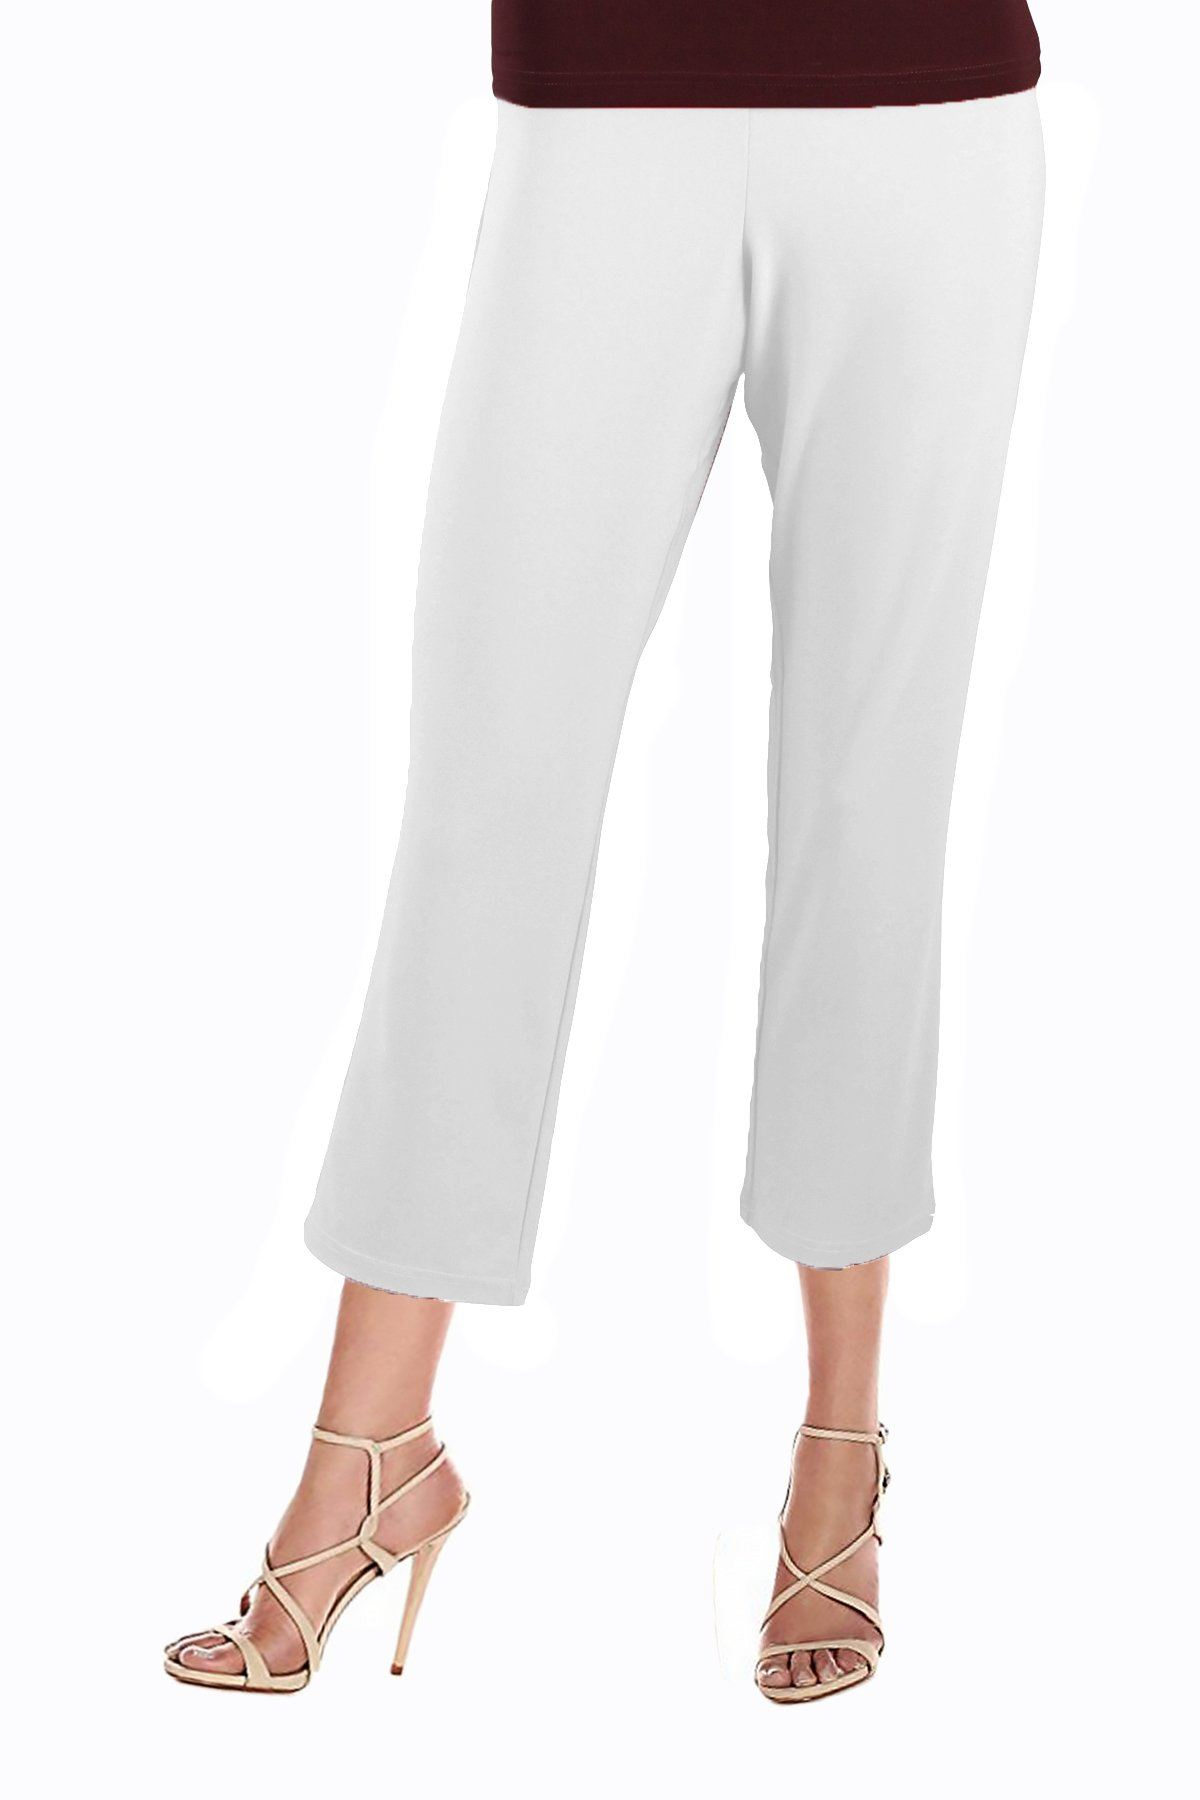 Women's White 3/4 Capri Pants Rosarini